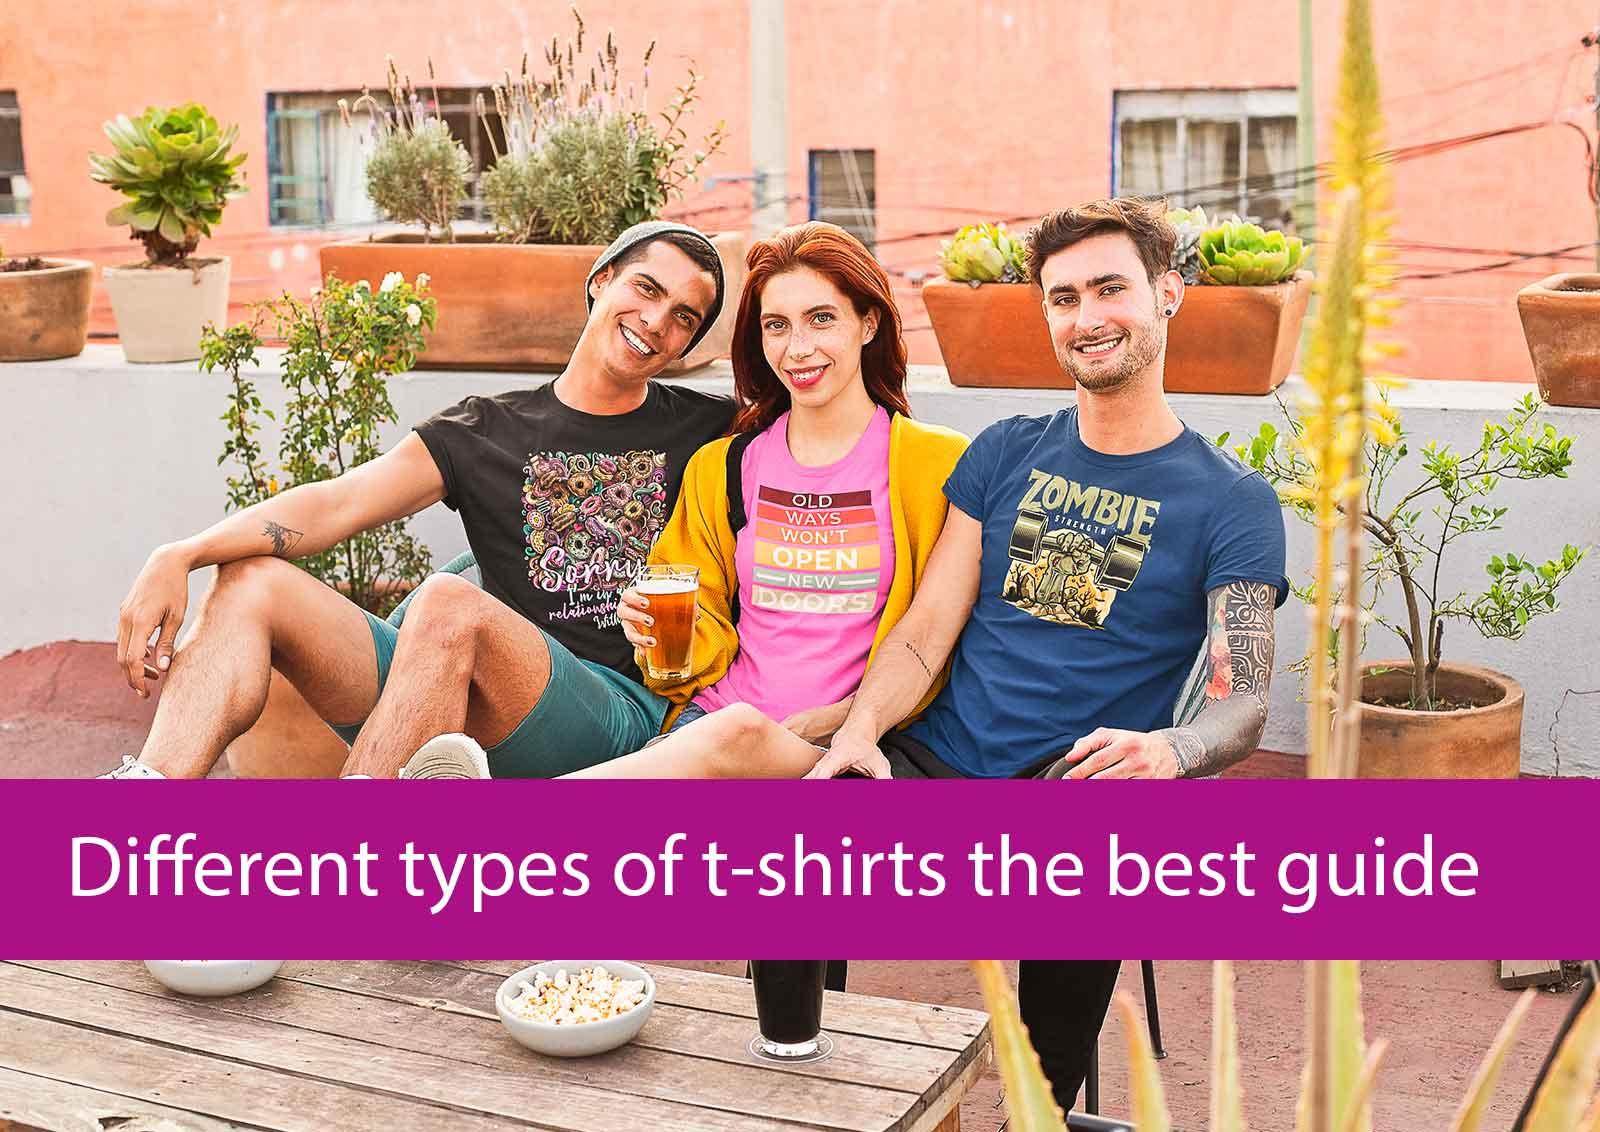 different types of t-shirts